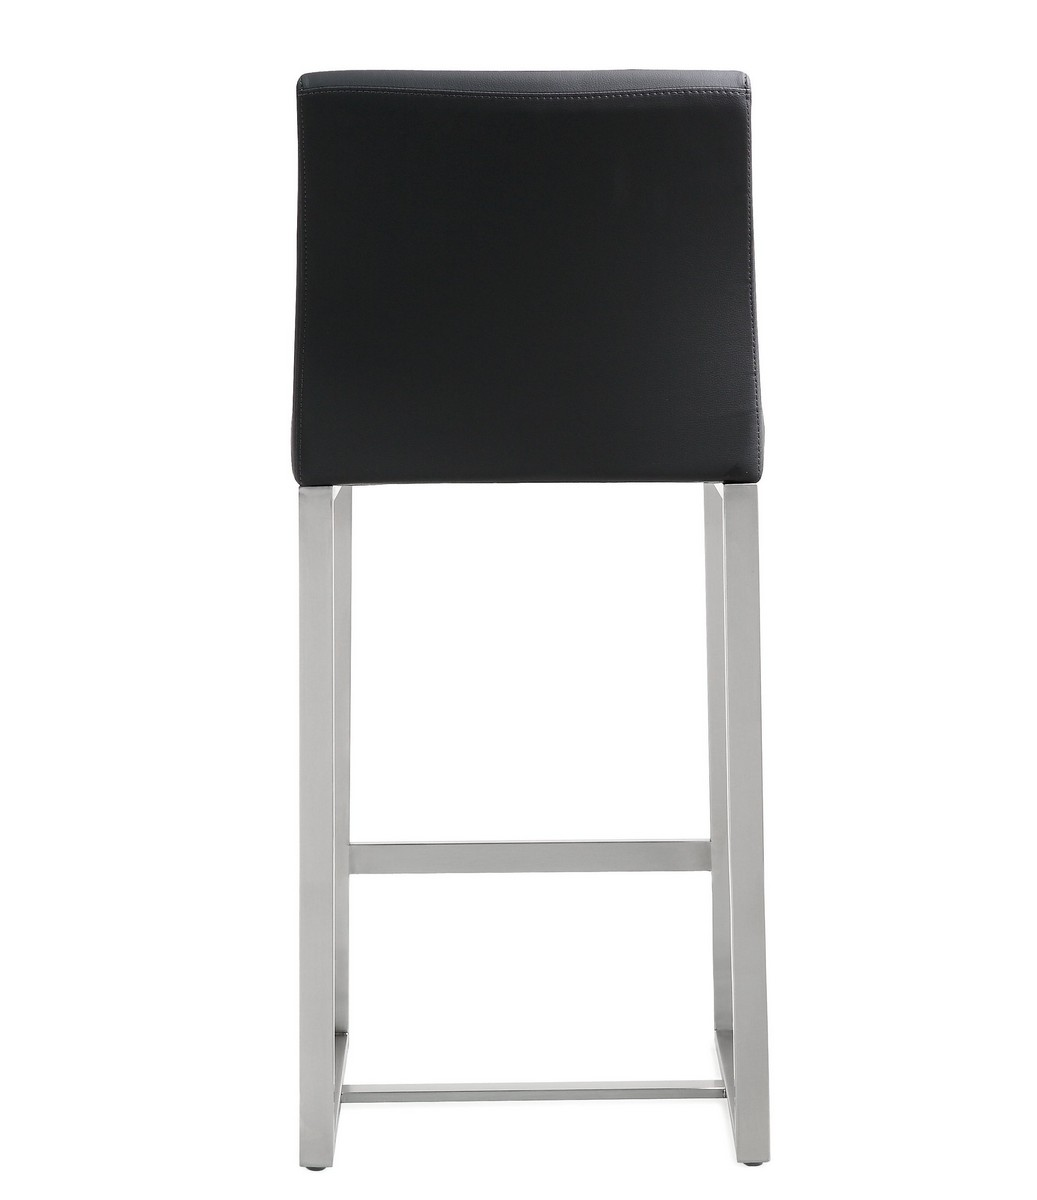 TOV Furniture Denmark Black Stainless Steel Counter Stool (Set Of 2)